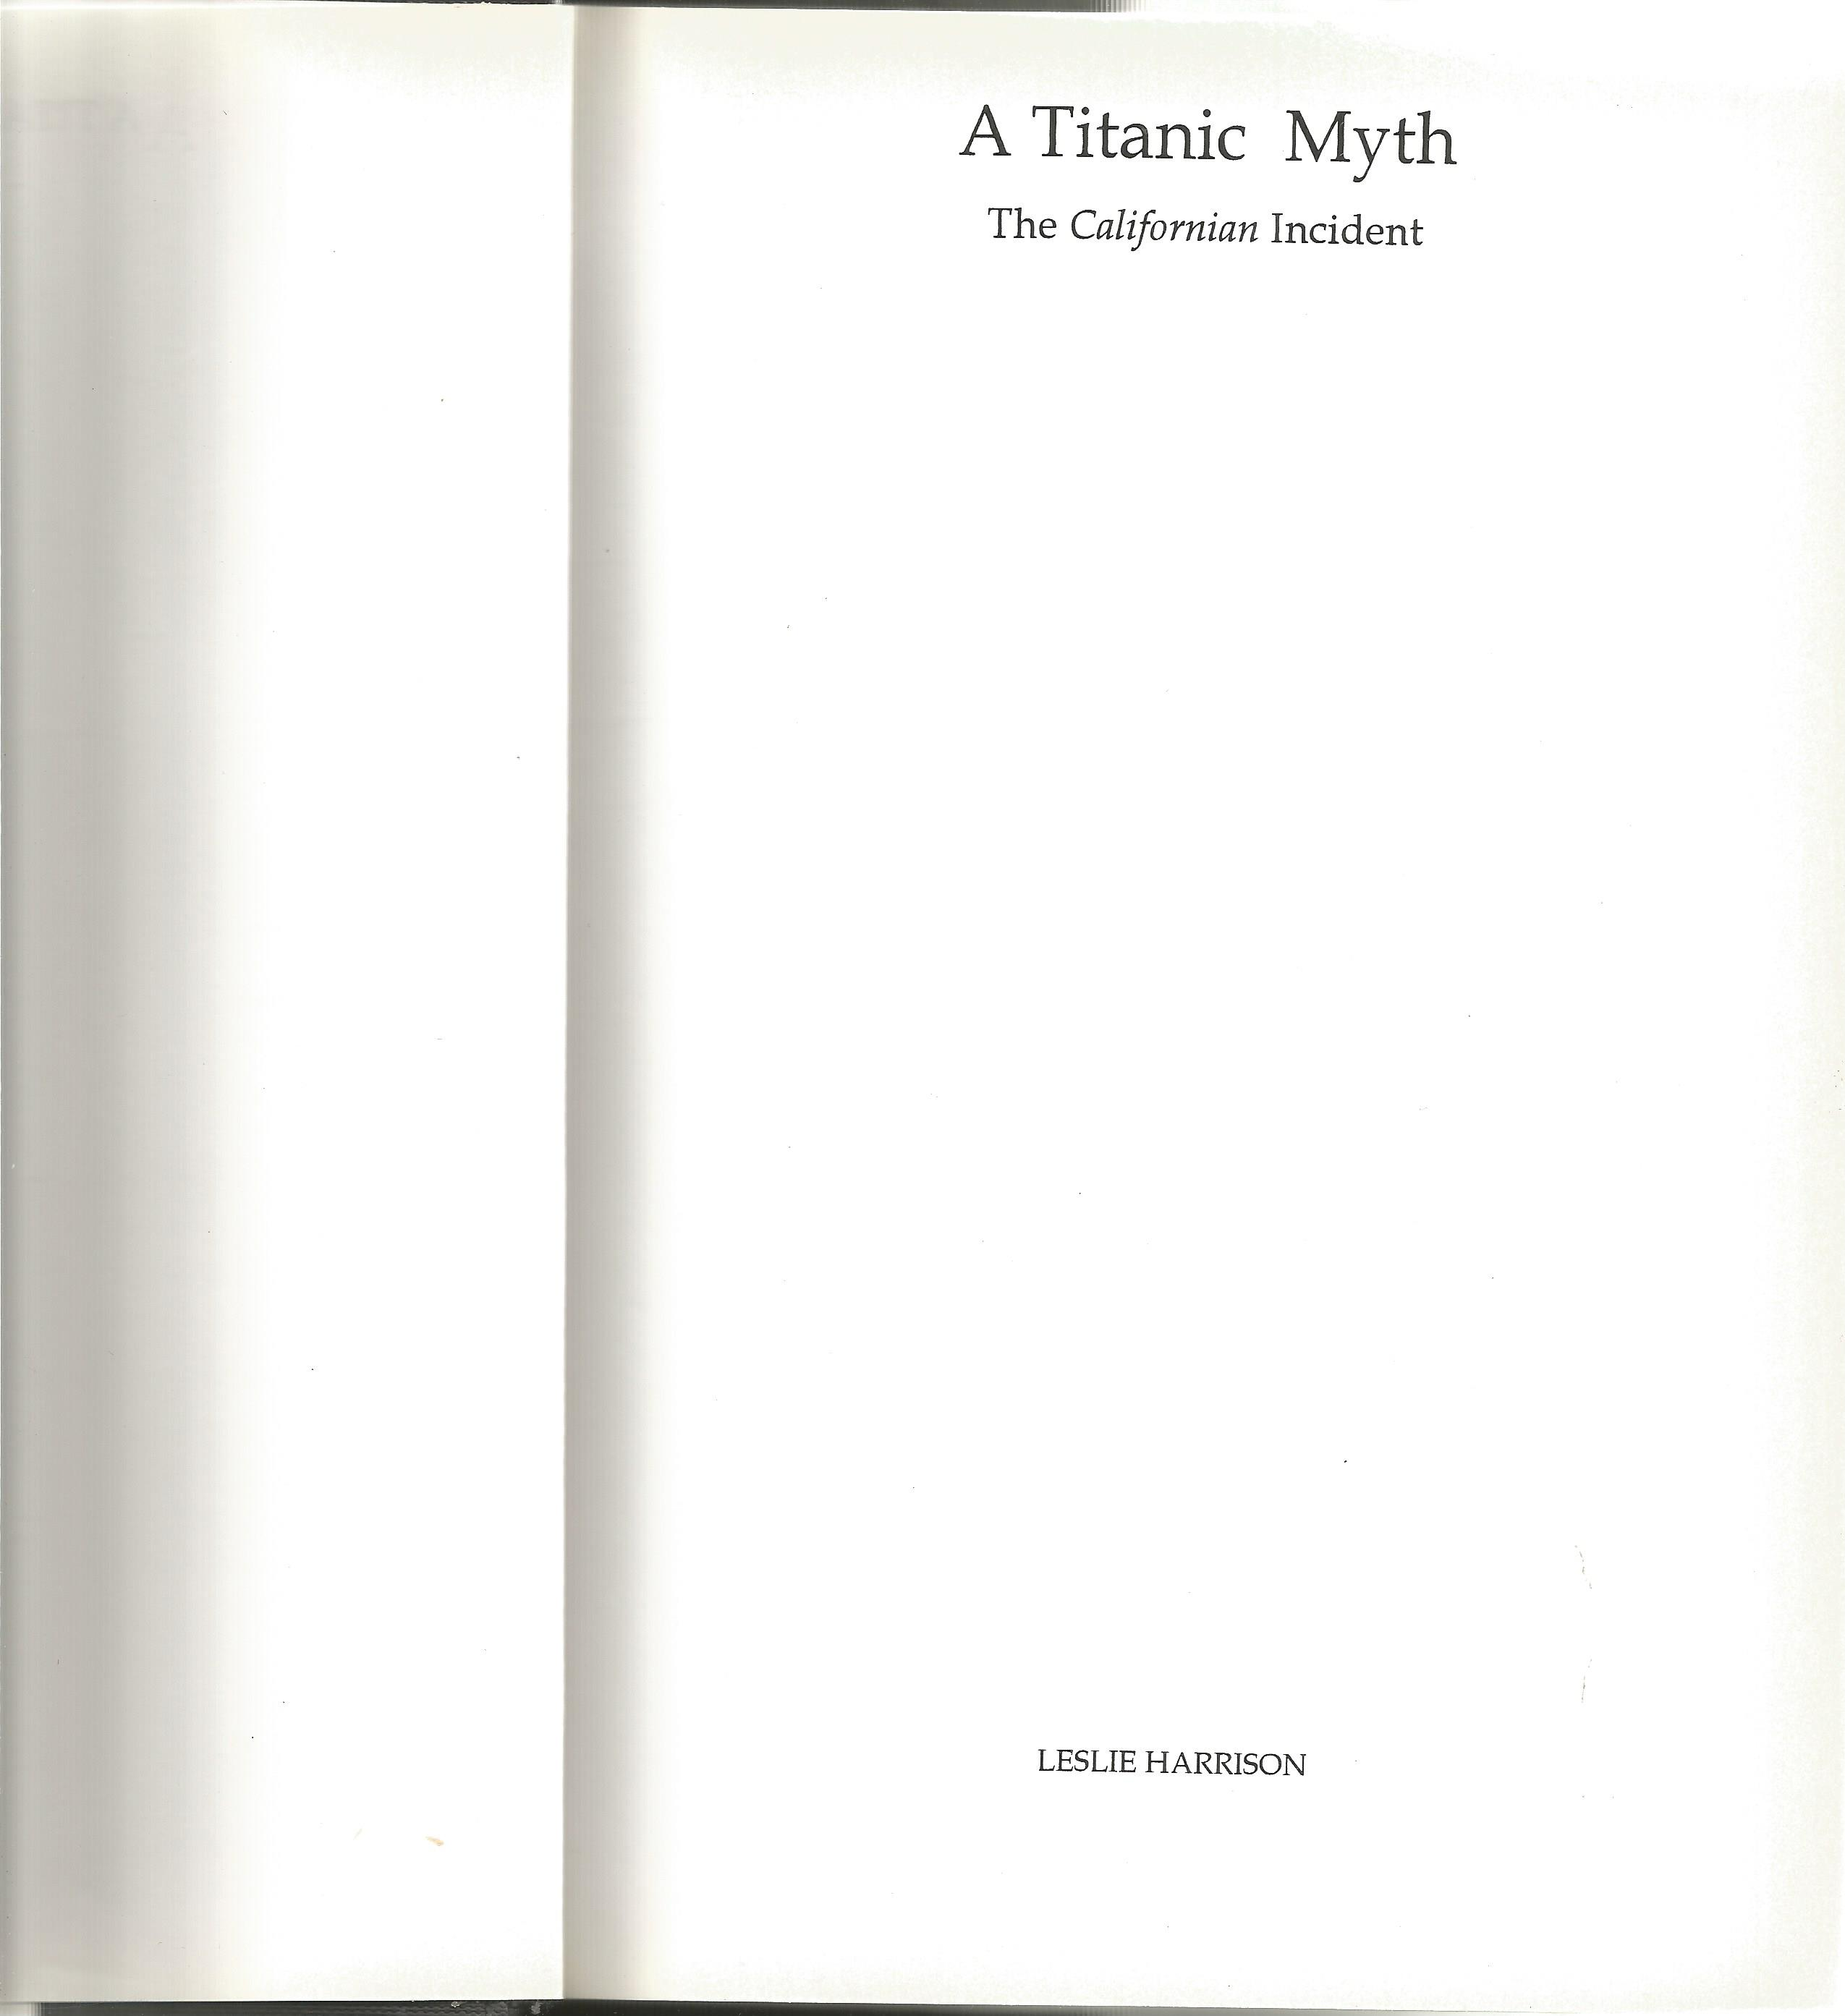 Titanic A Myth unsigned hardback boo with dust jacket by Leslie Harrison. 1992 second edition in - Image 2 of 2